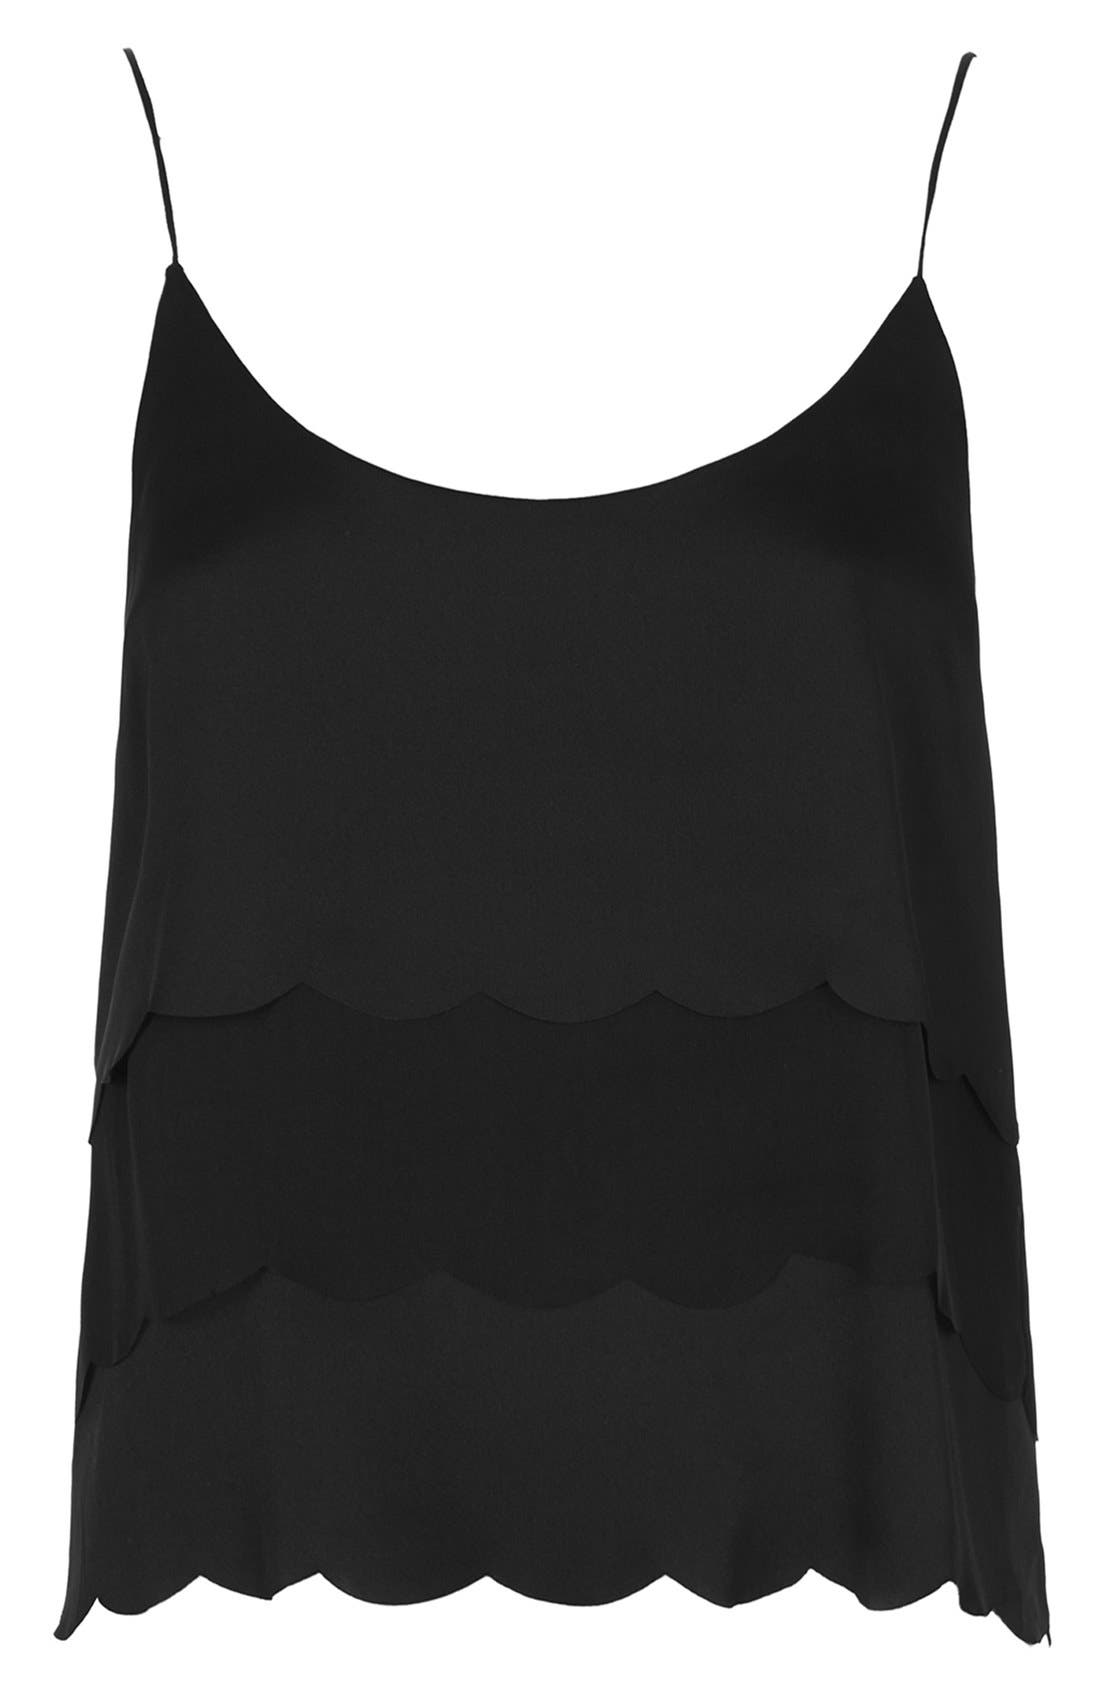 TOPSHOP,                             Kate Moss for Topshop Scalloped Camisole,                             Alternate thumbnail 5, color,                             001